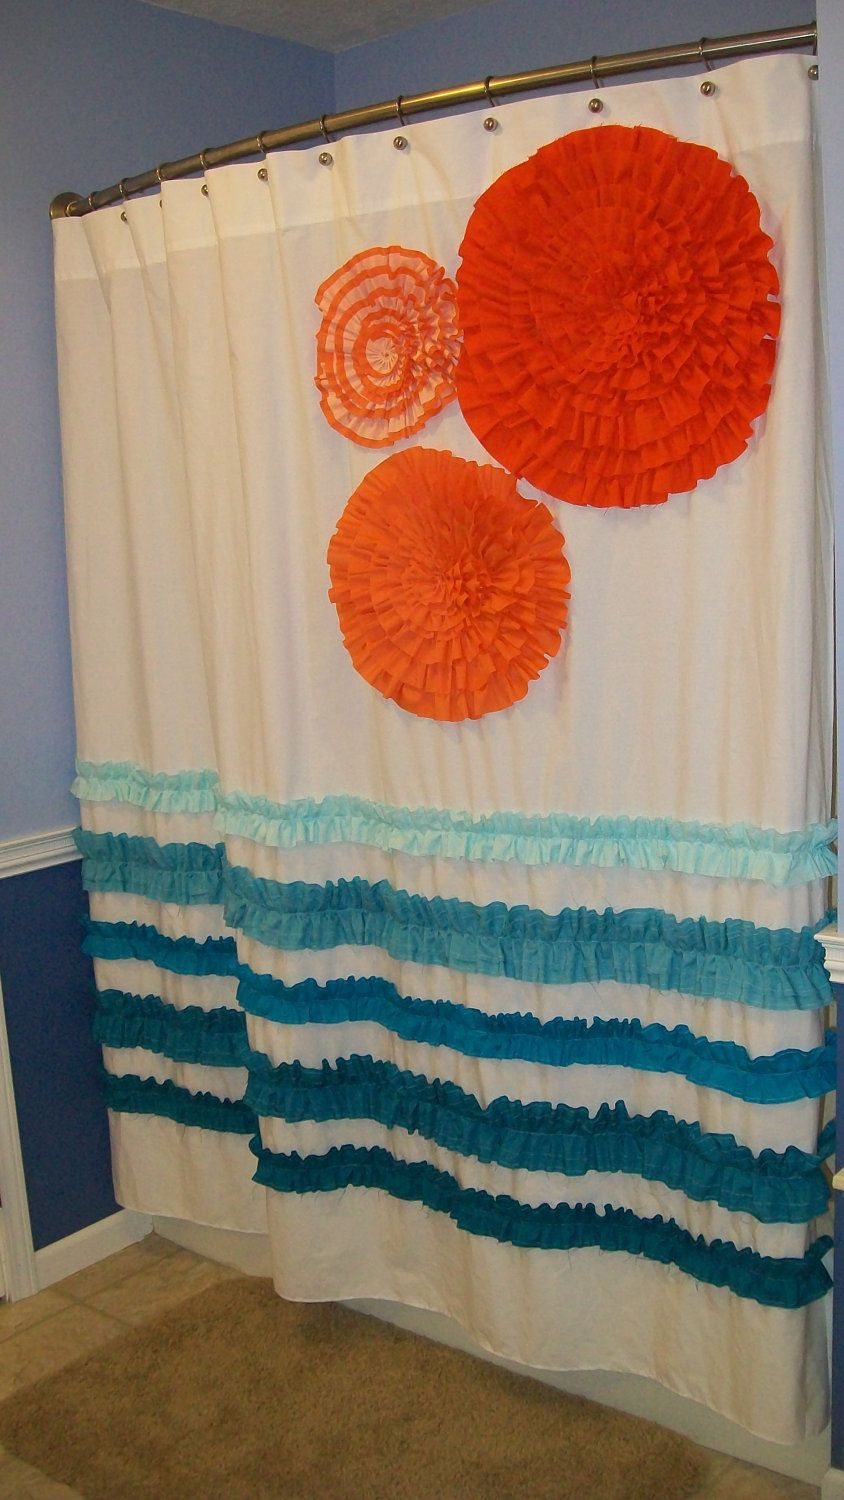 Solid teal shower curtain - Shower Curtain Custom Made Designer Fabric Ruffles And Flowers Peach Orange Tangerine Teal